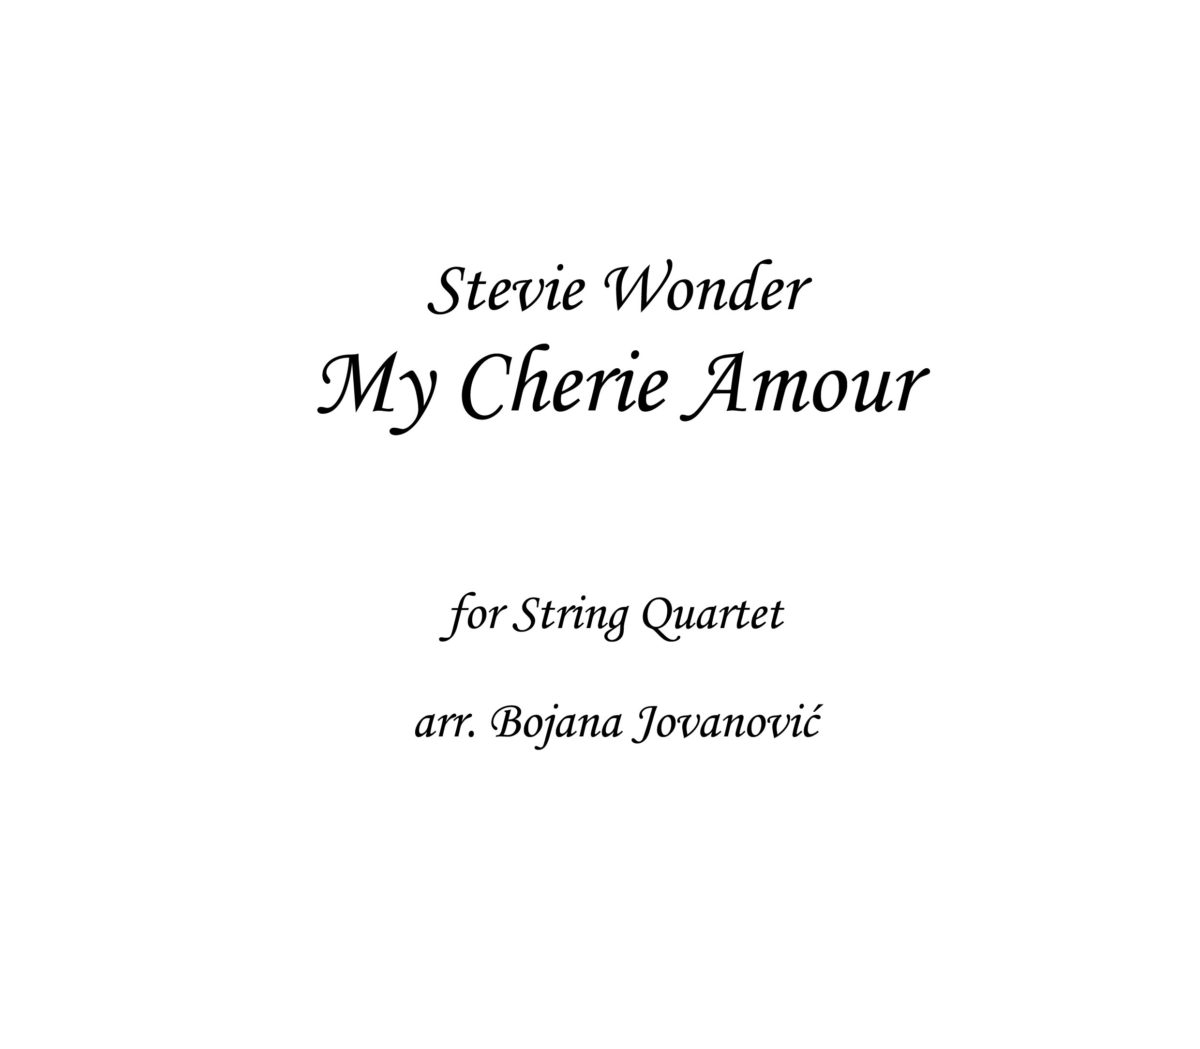 My Cherie Amour Stevie Wonder Sheet music